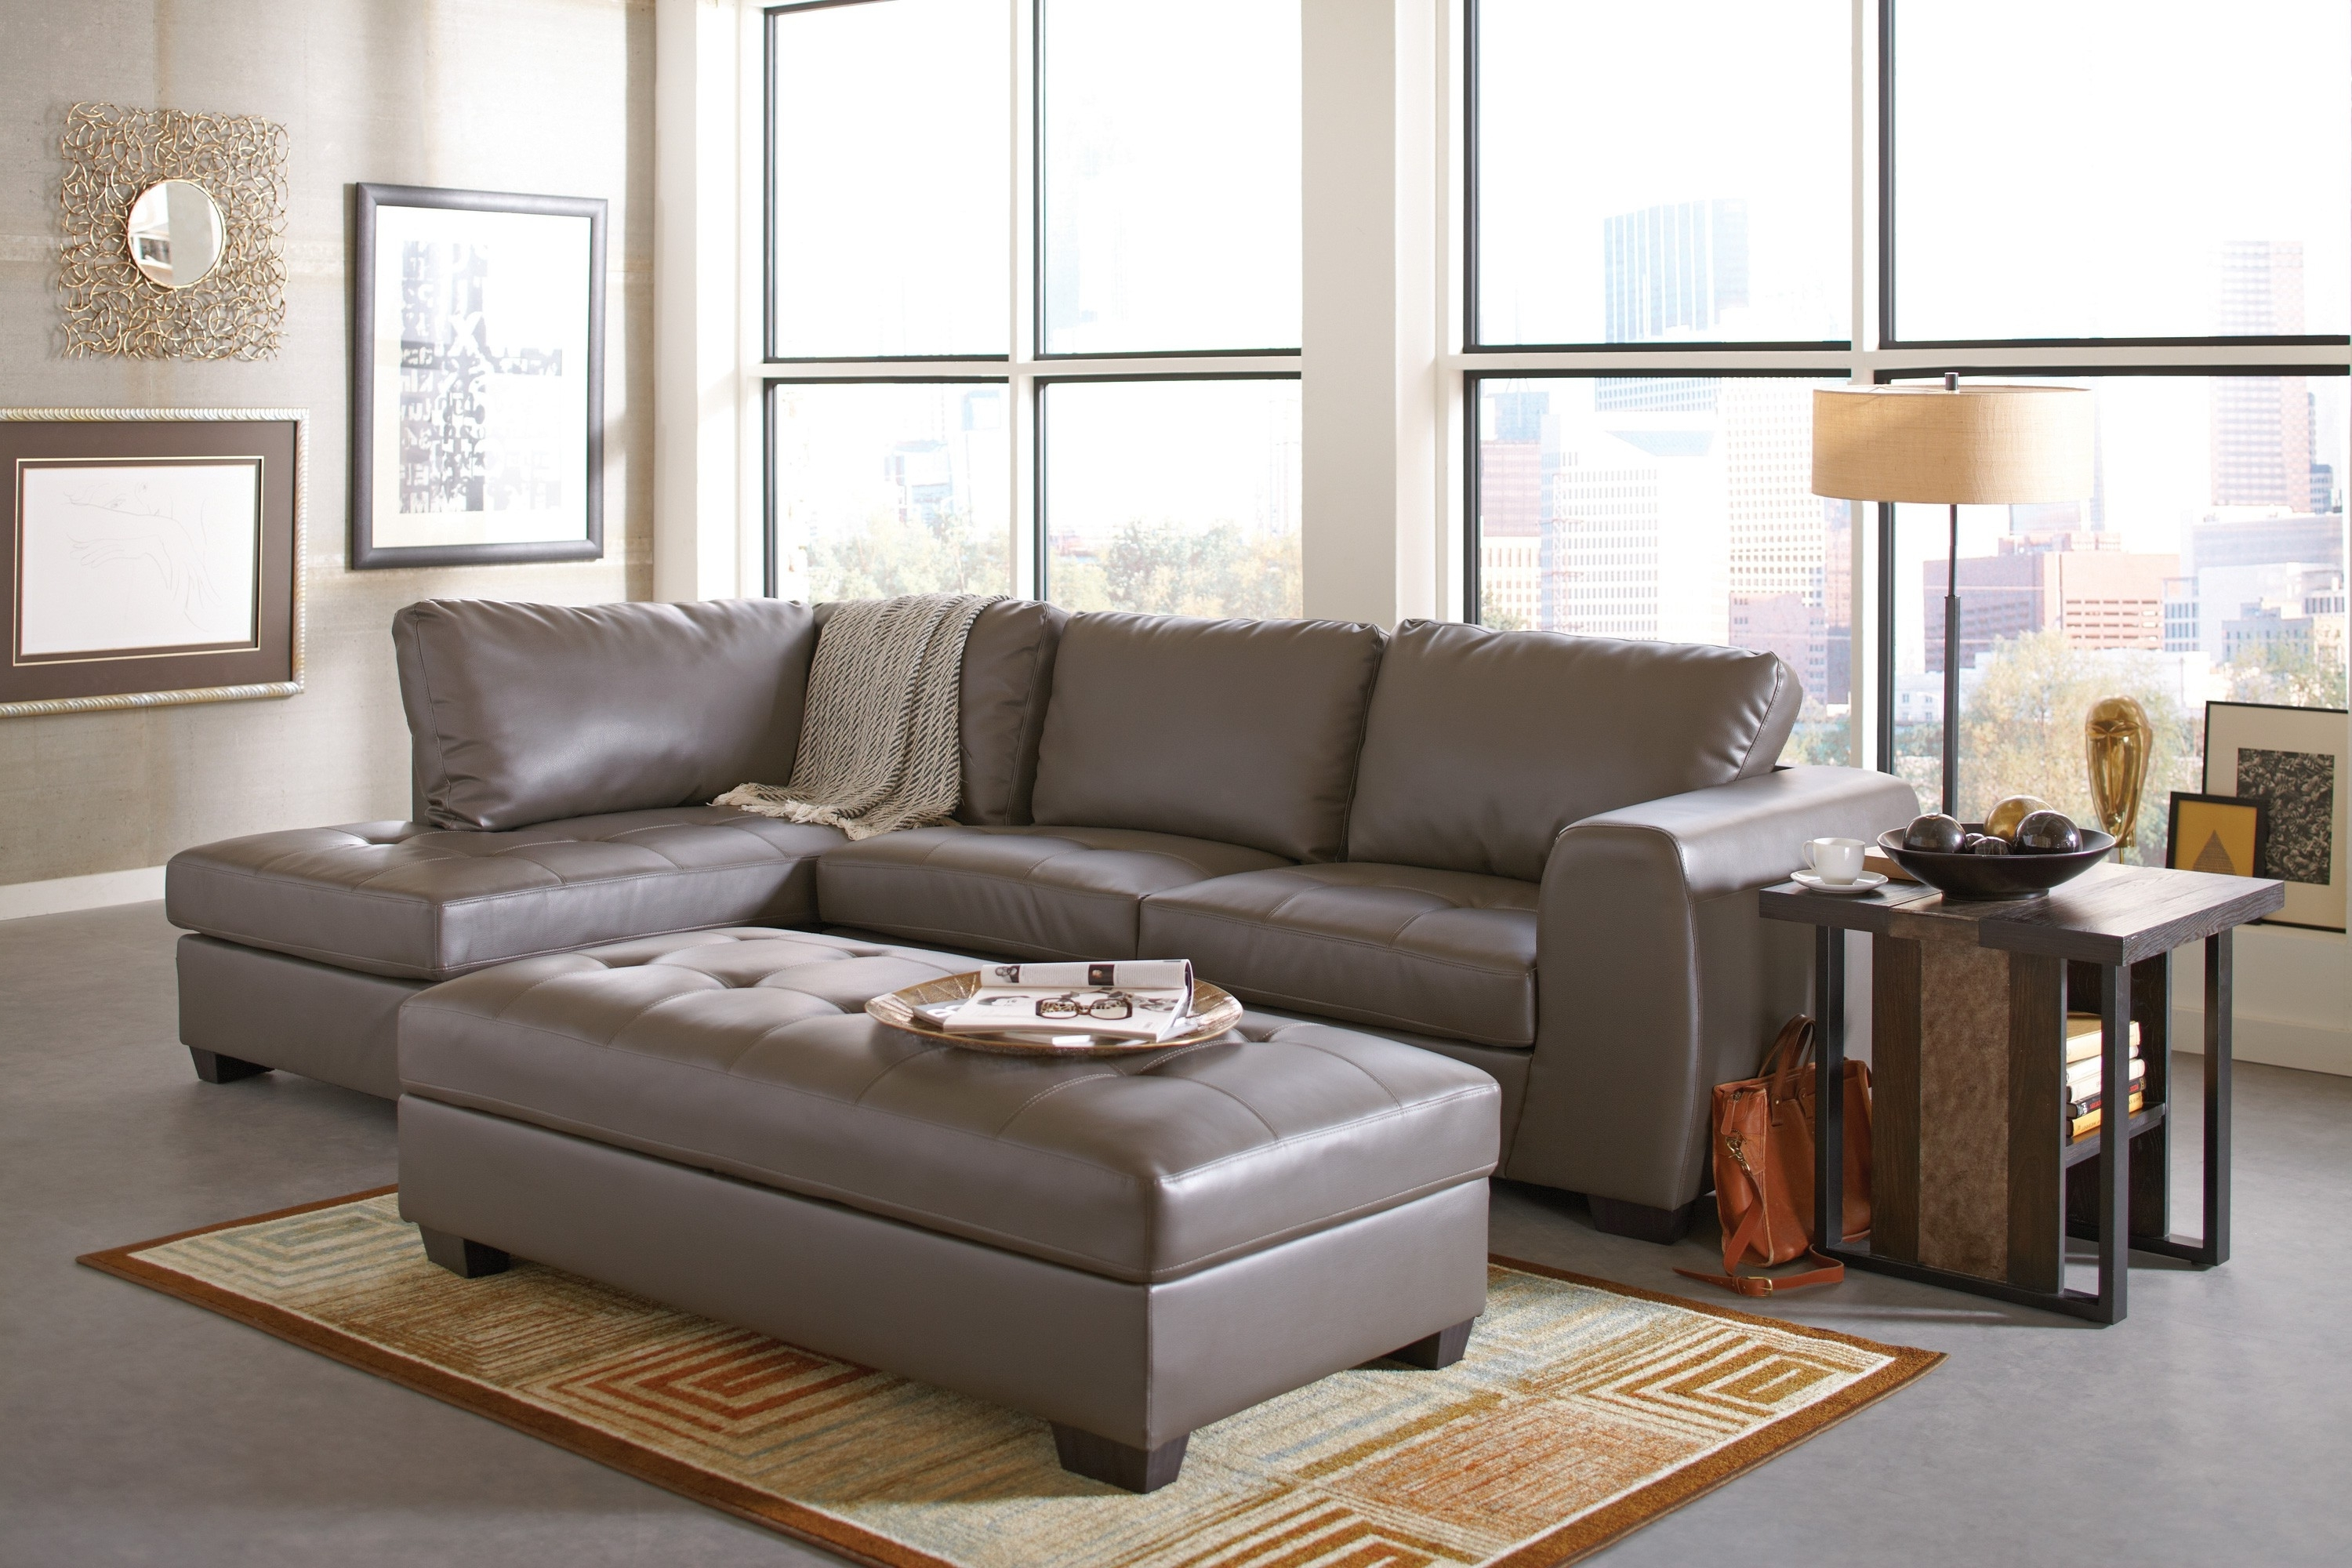 Elegant Sectional Sofa Under 200 – Buildsimplehome Pertaining To Most Up To Date Sectional Sofas Under (View 14 of 20)